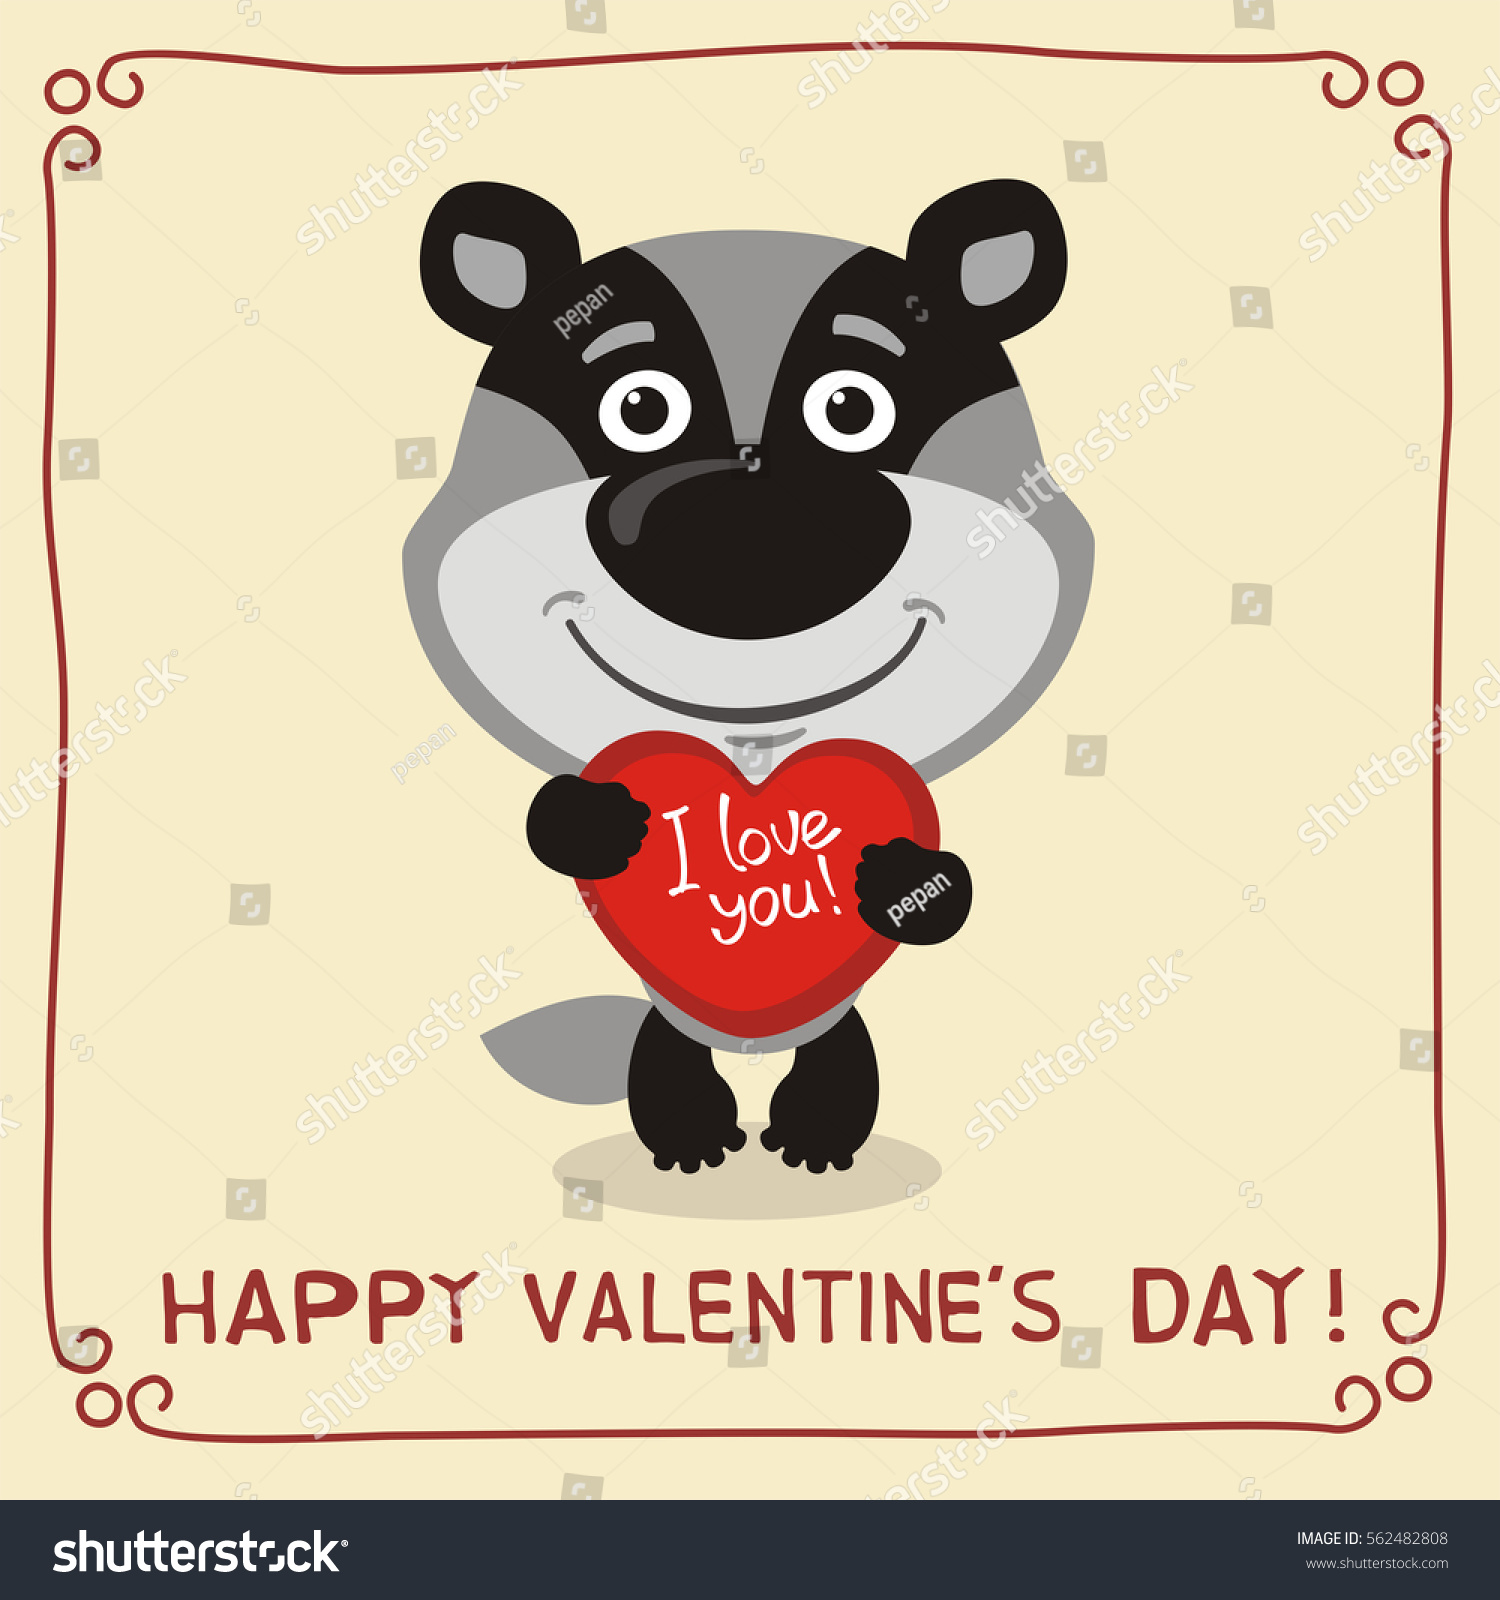 Watch - Valentines Happy day funny pictures video